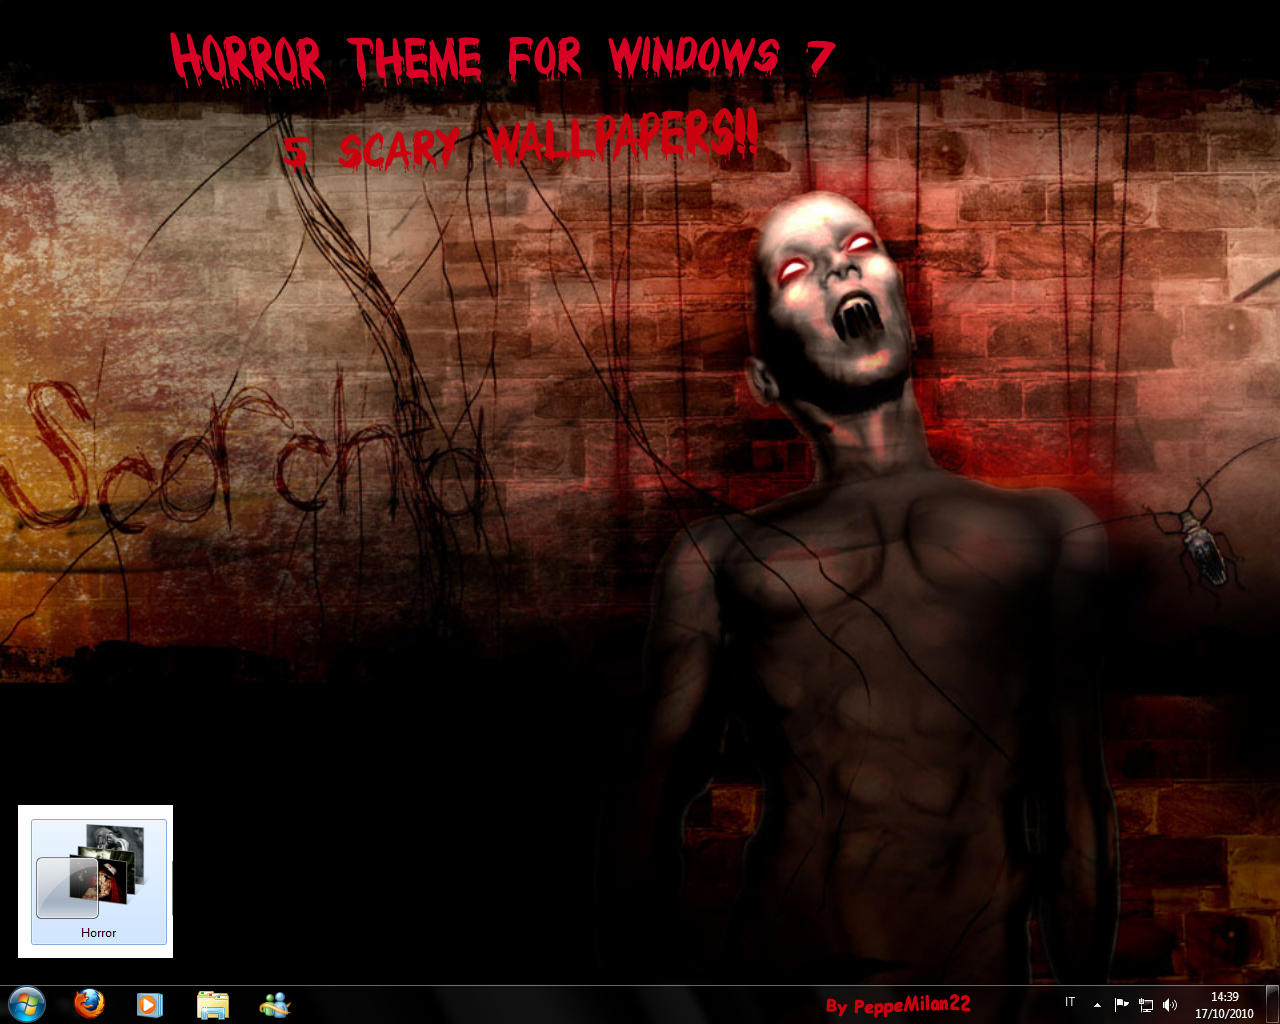 Horror themes for windows 7 and xp download